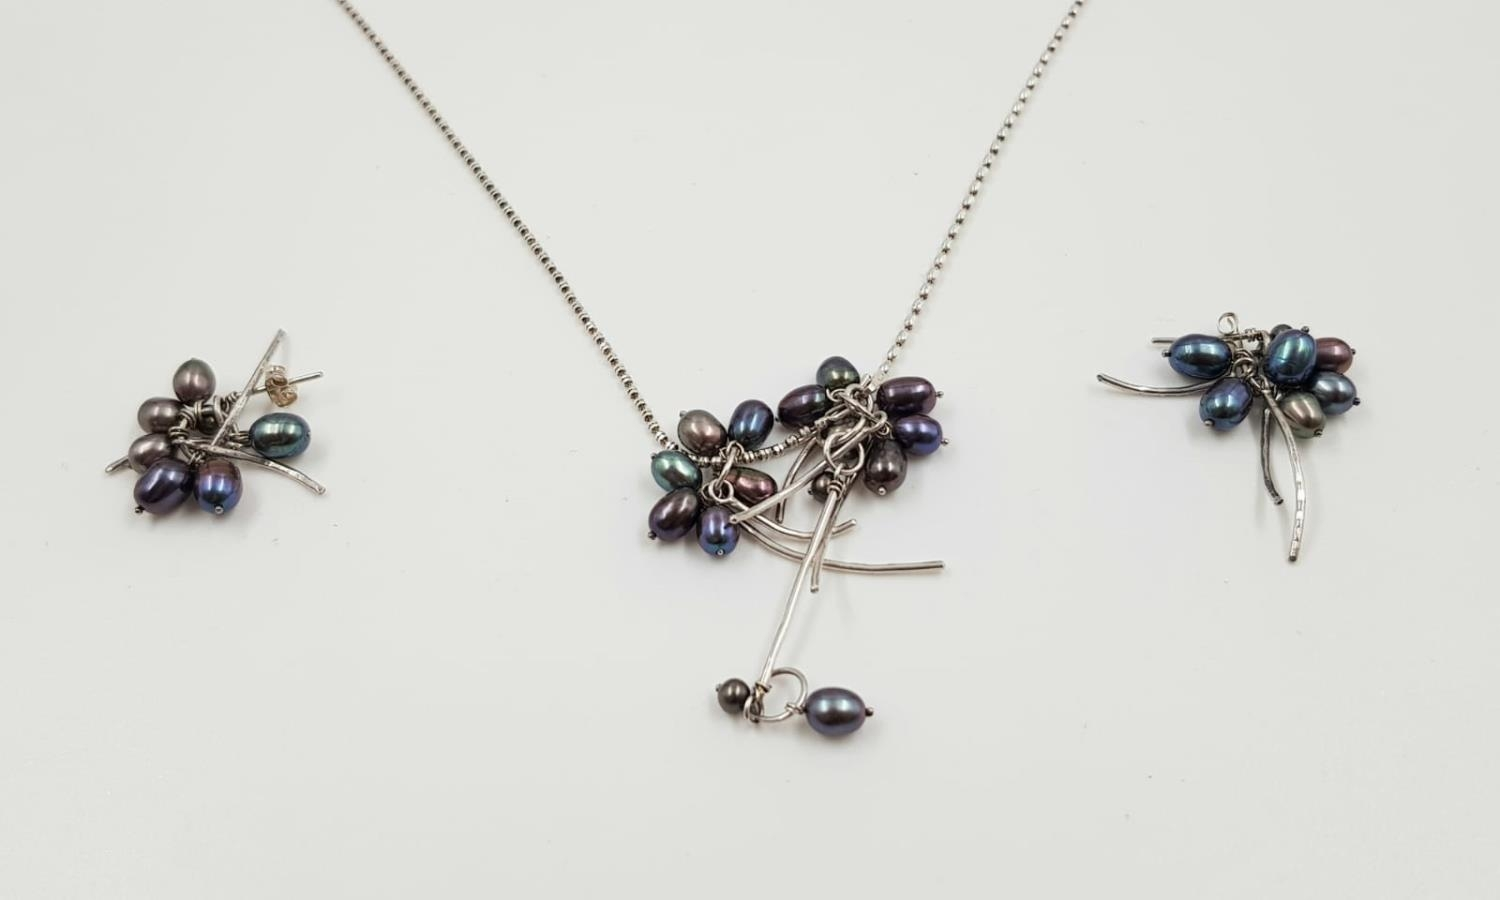 A black pearl and silver necklace with earring set. Weighs 15.4g and length is 84cm. - Image 2 of 3